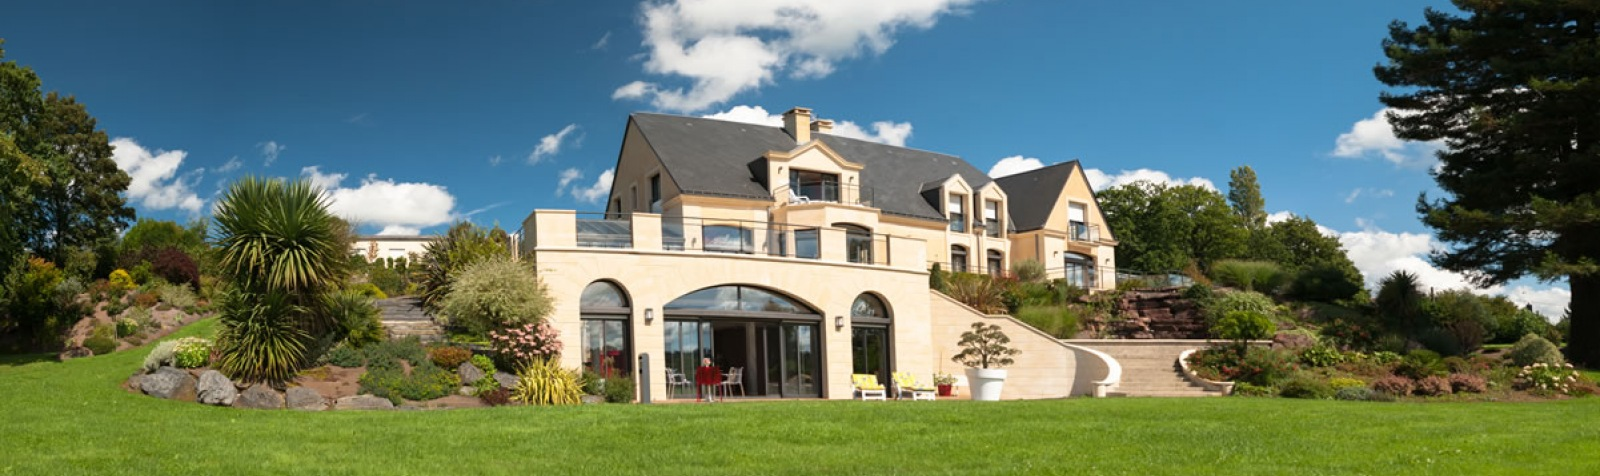 Domaine des chevaliers A place to discover, a place to live